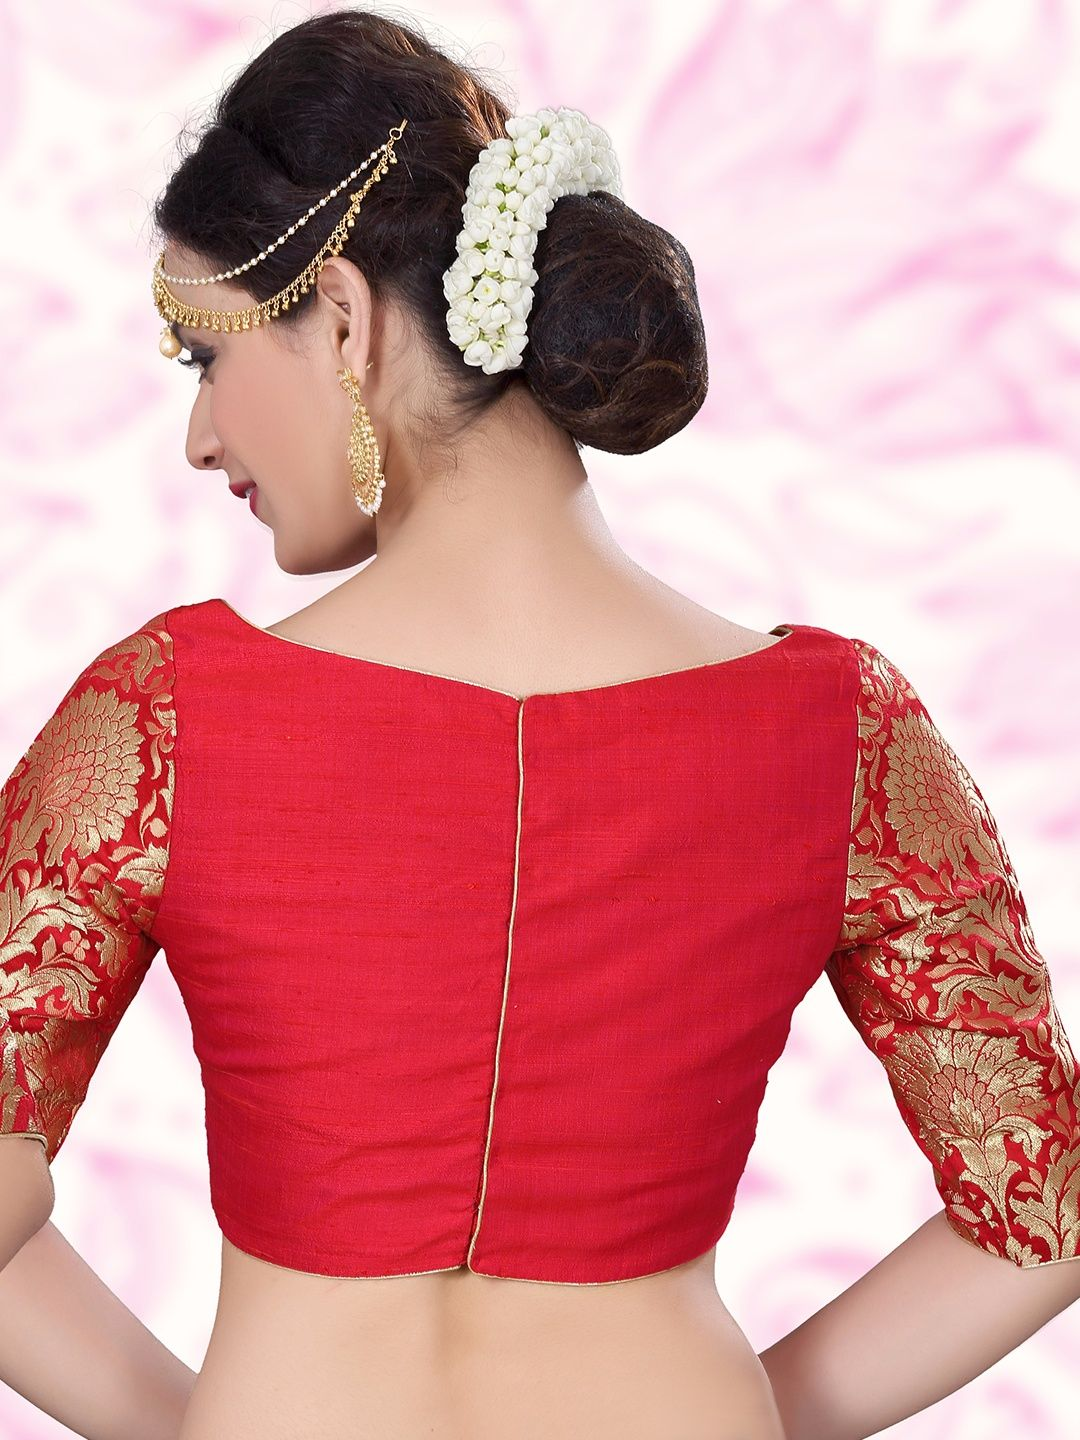 2c60d5090c2fb8 Shop Red nice designer raw silk ready made blouse online from G3fashion  India. Brand - G3, Product code - G3-RB0360, Price - 3495, Color - Red, ...